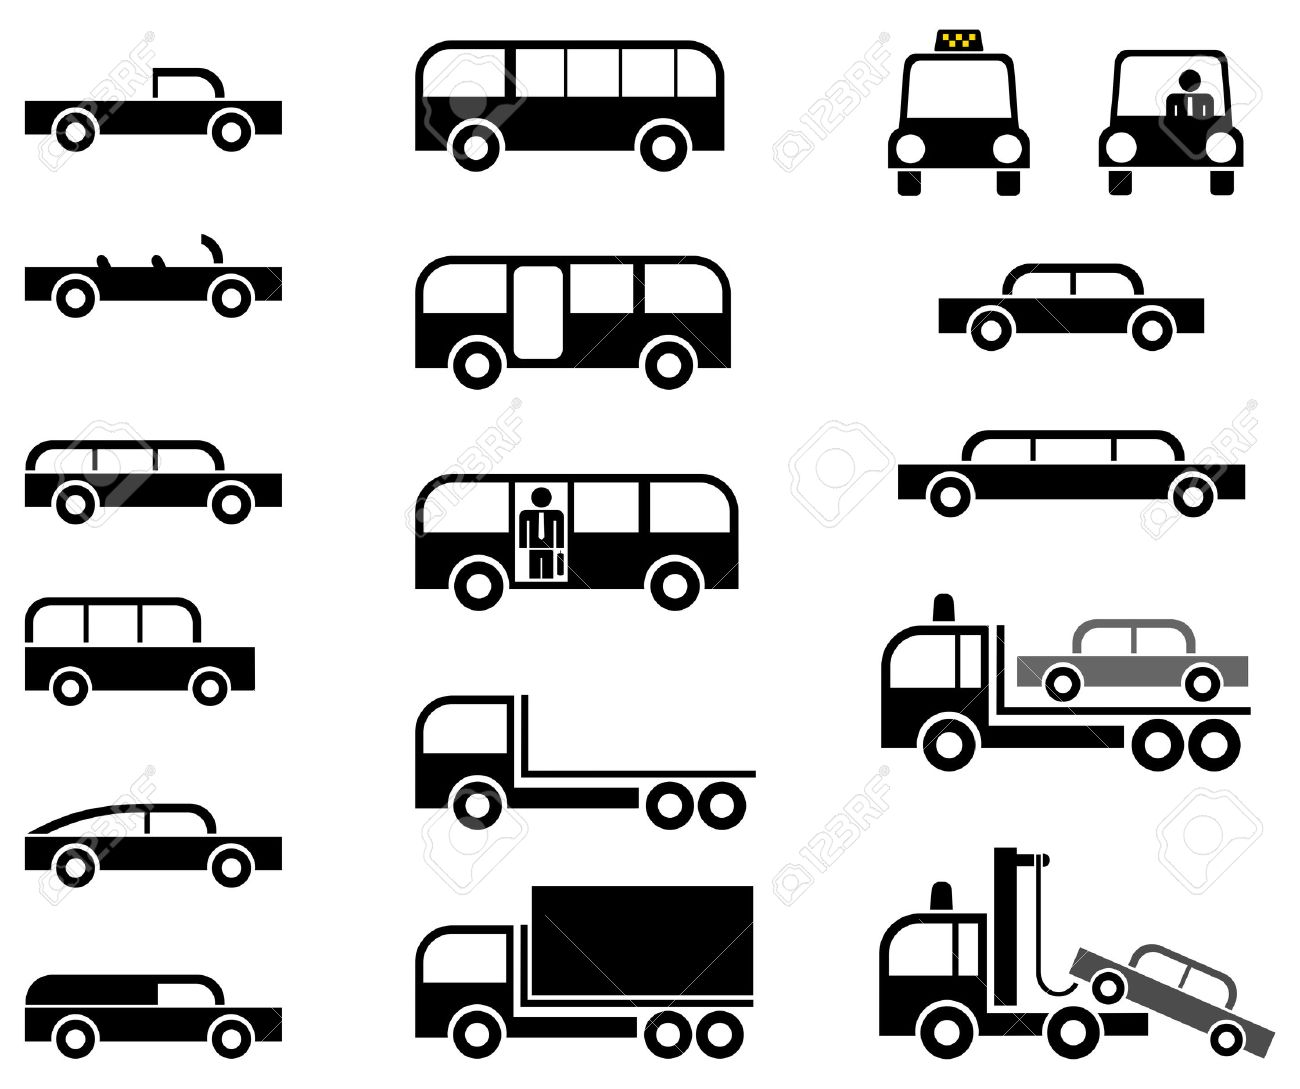 Different types of car body - stylized vector pictograms. Cars, trucks, tow trucks and buses. Stock Vector - 5396270